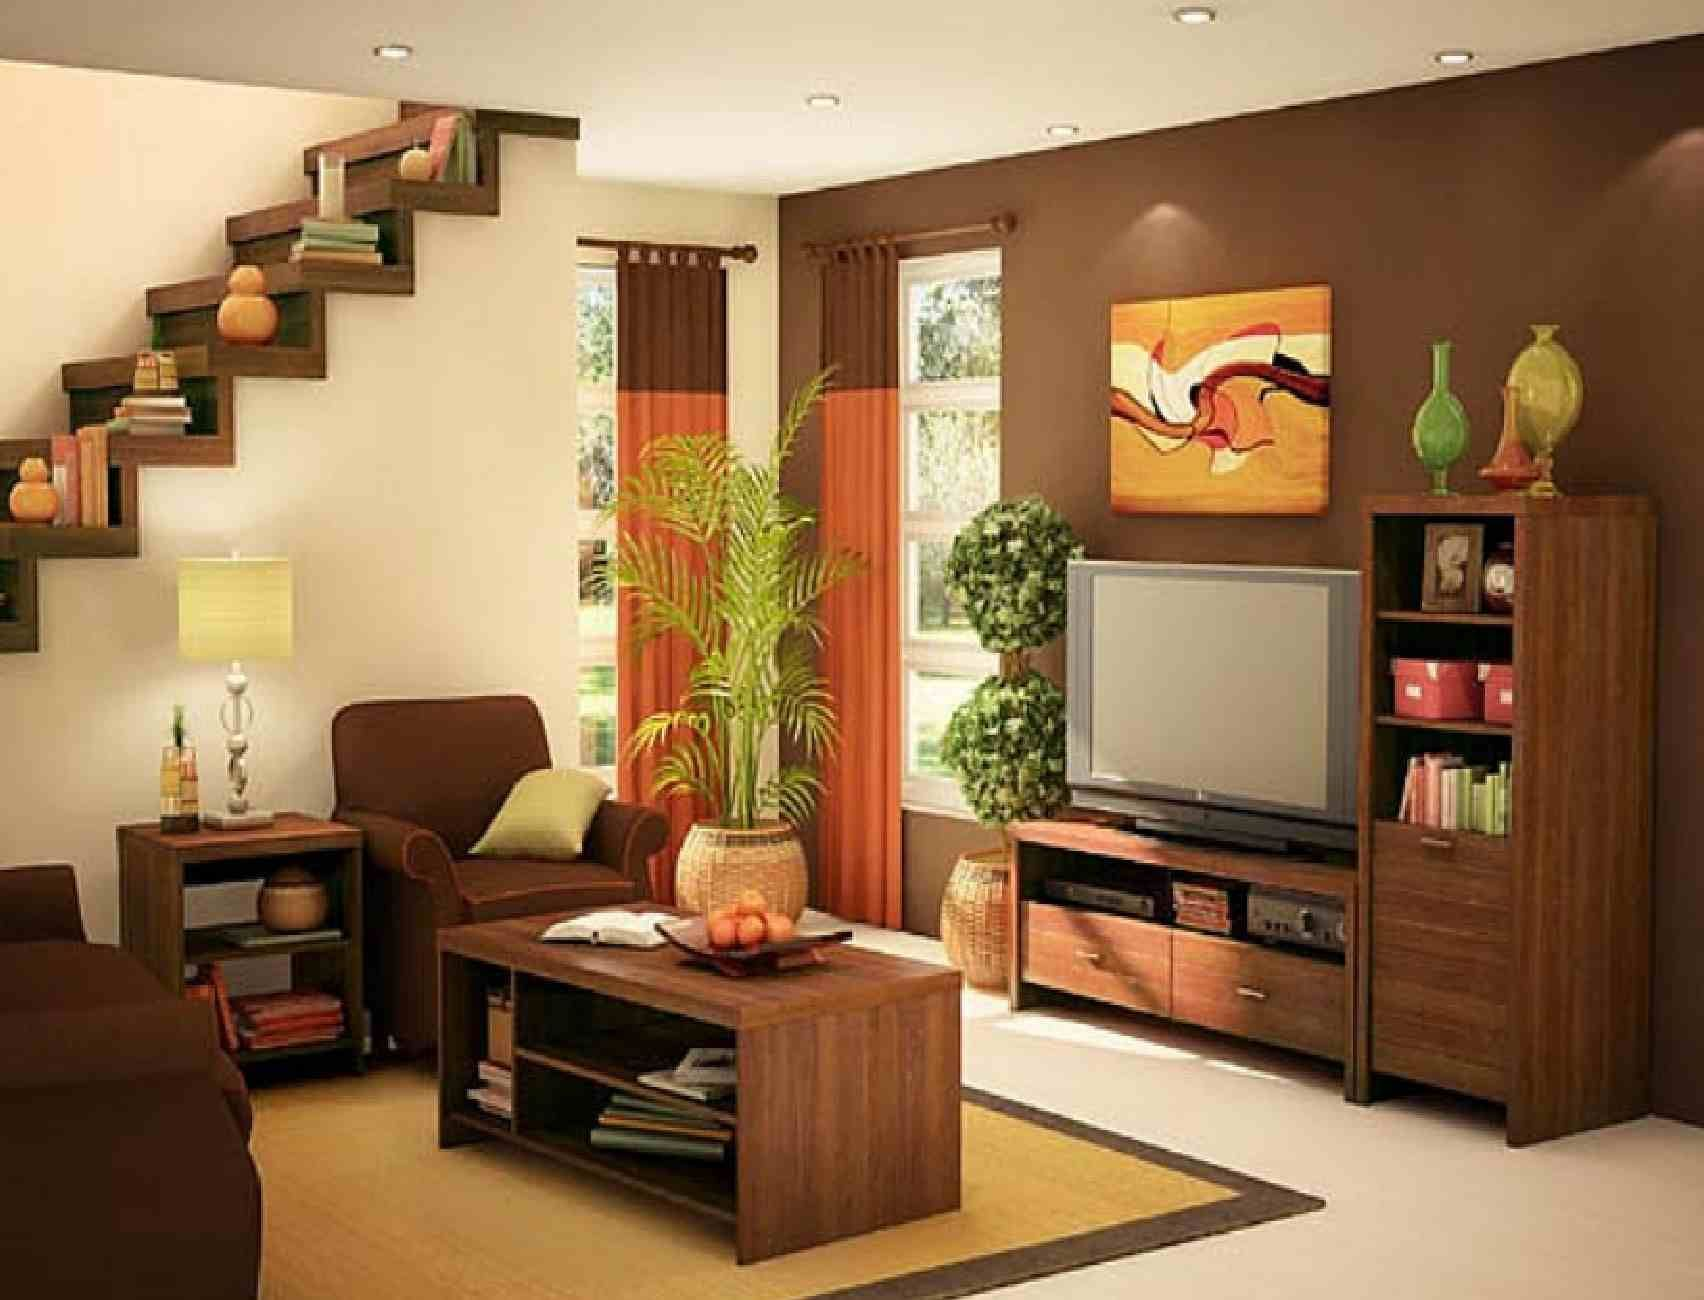 Wonderful Awesome Dream Simple Living Room Designs For Small Spaces 18 Concept